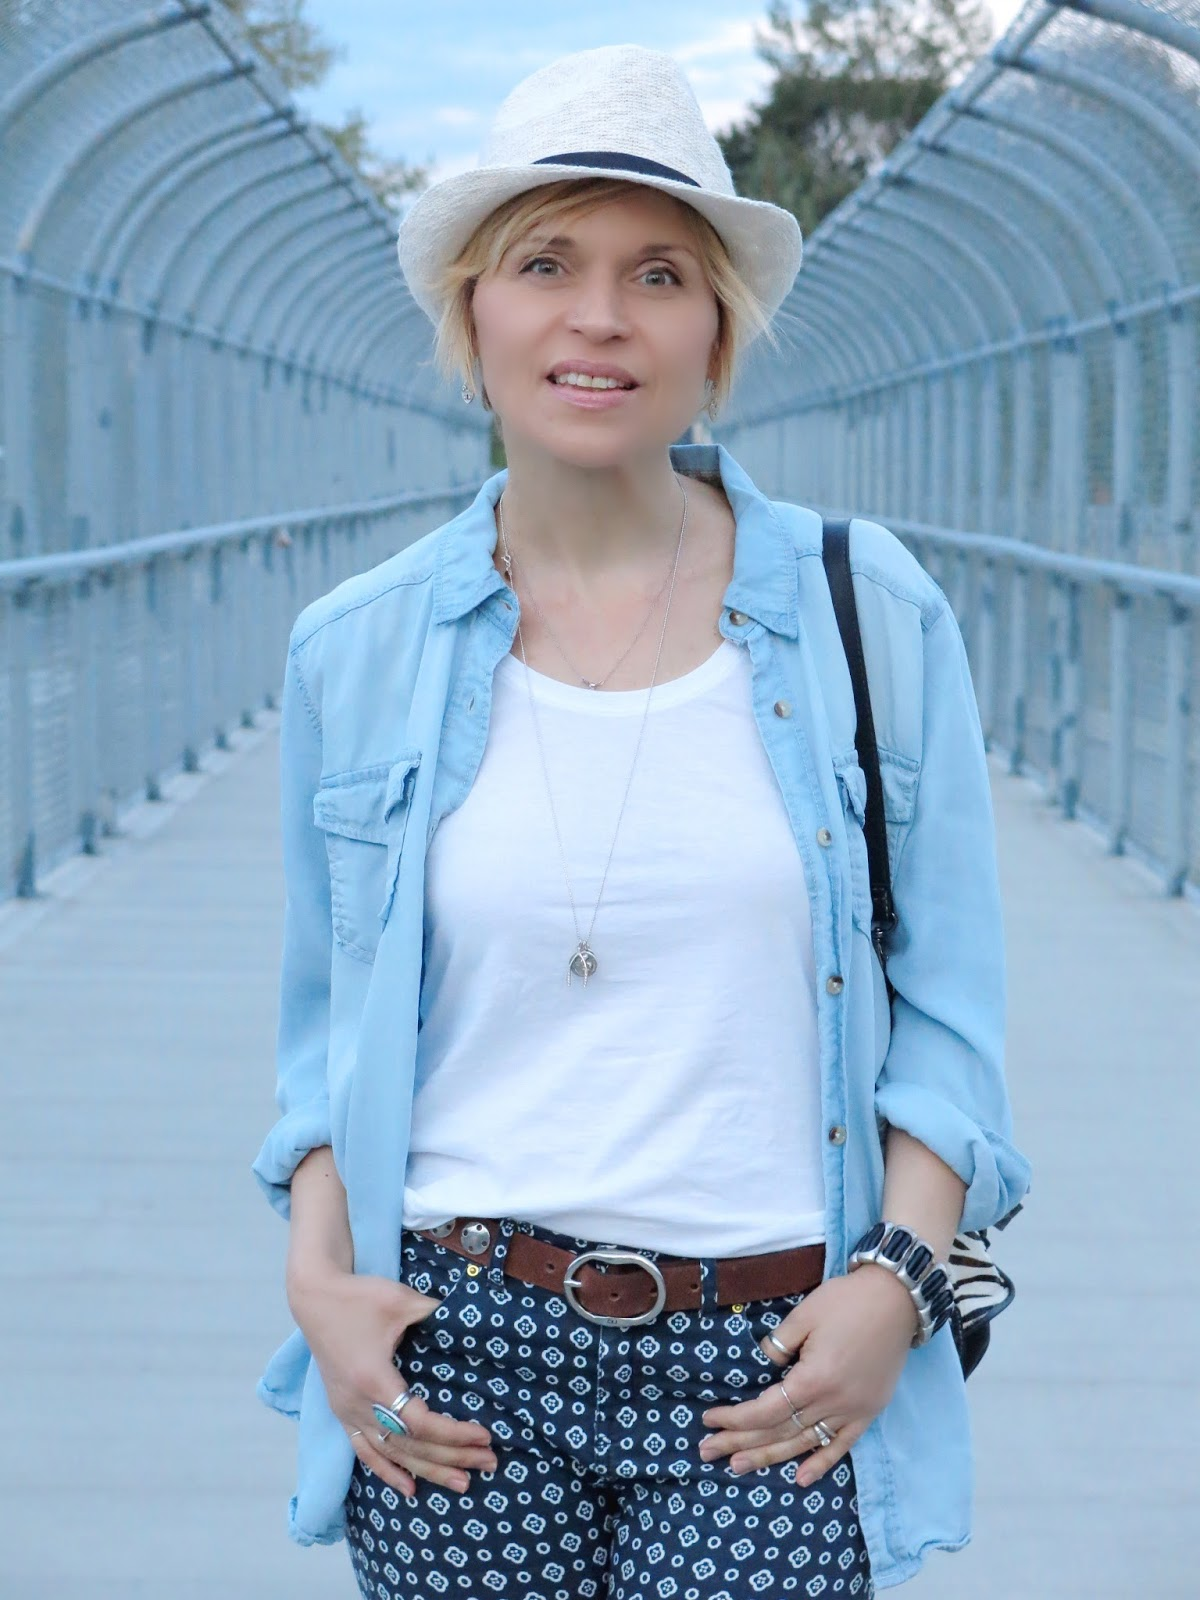 printed pants, chambray shirt, and a summer fedora